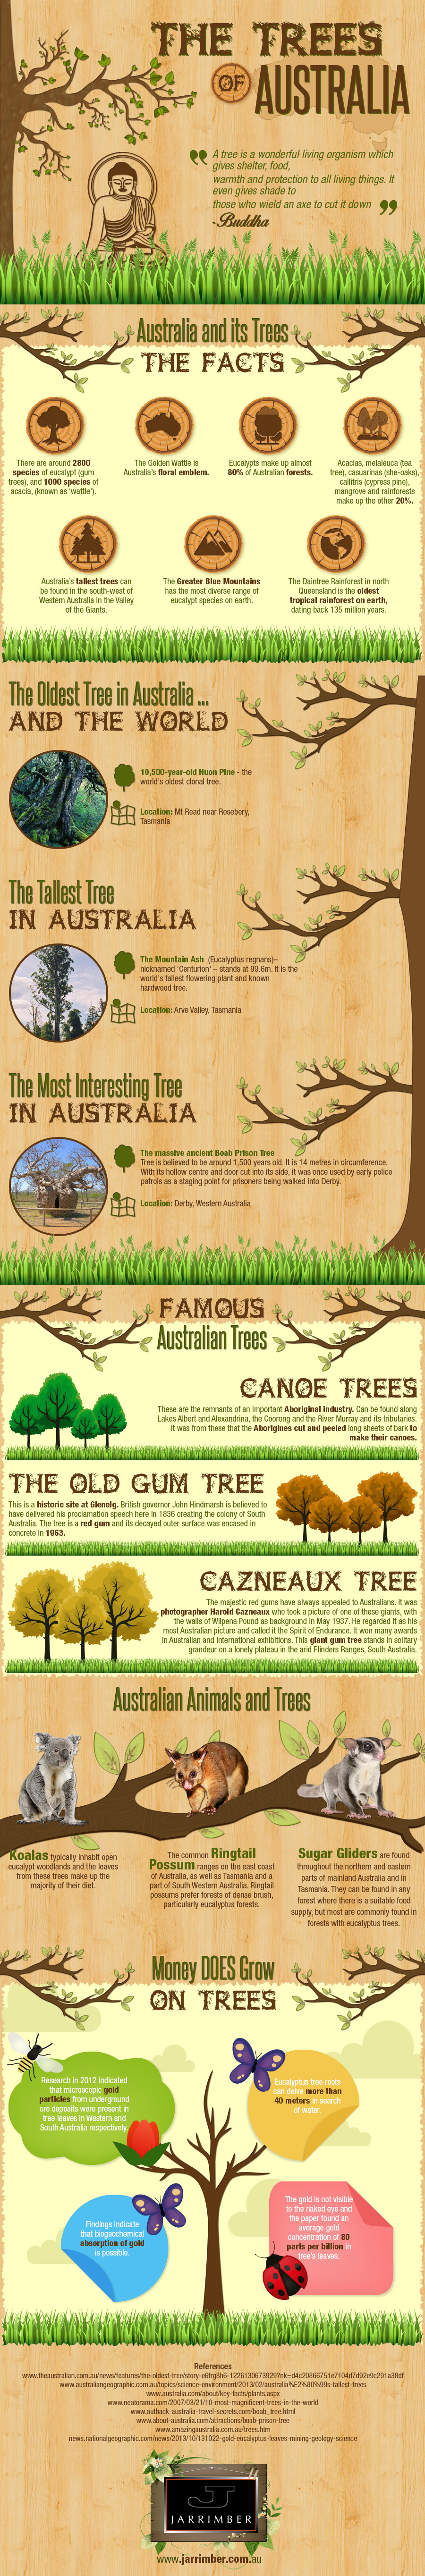 Trees of Australia Infographic